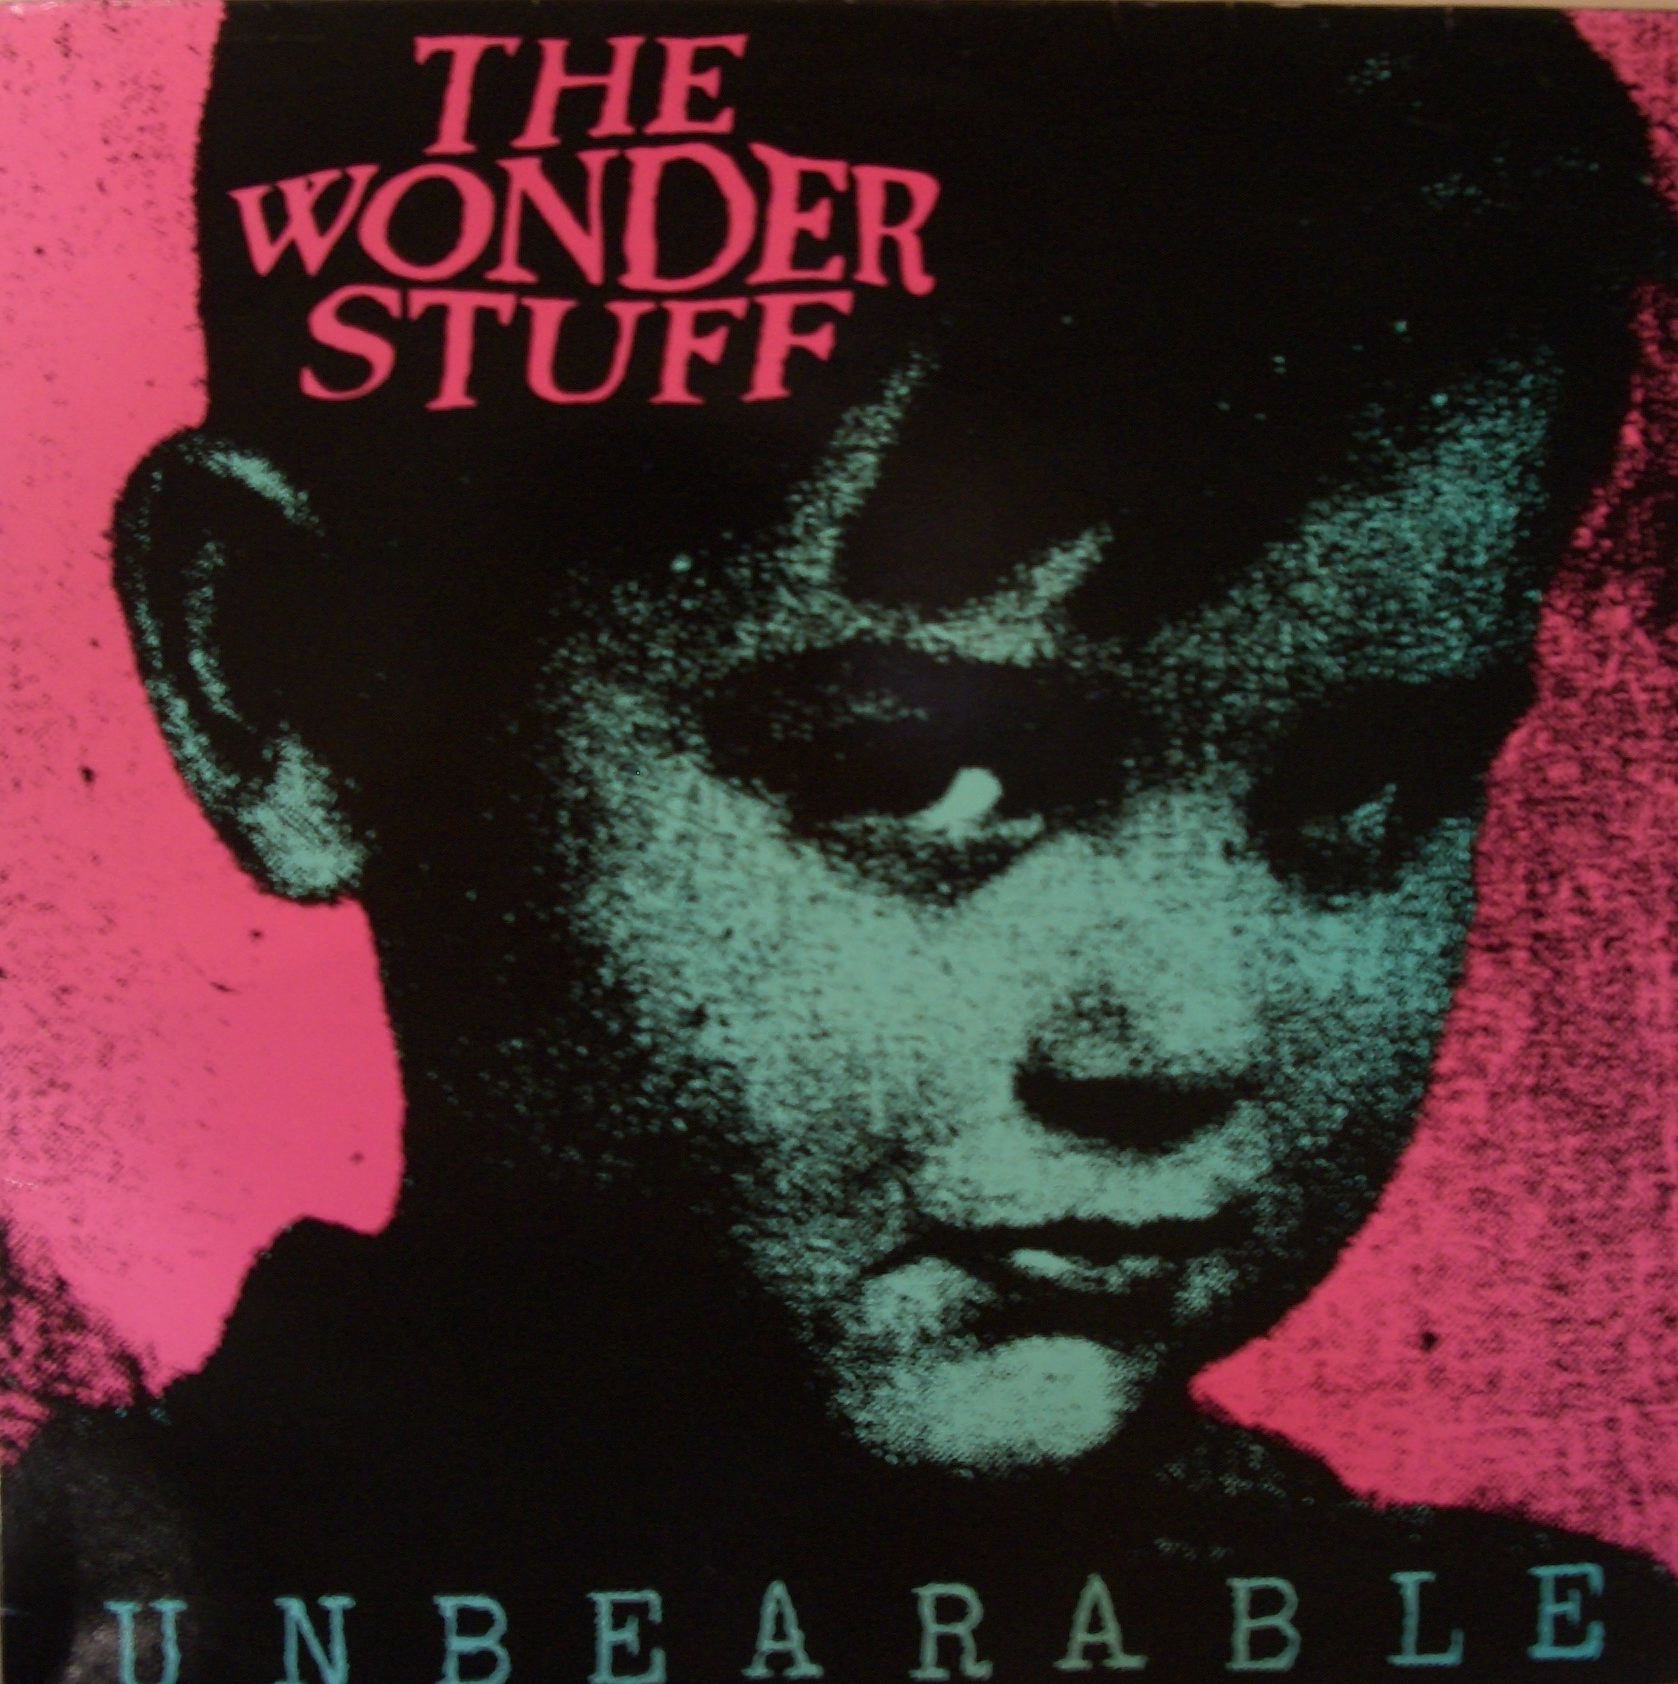 THE WONDER STUFF / UNBEARABLE